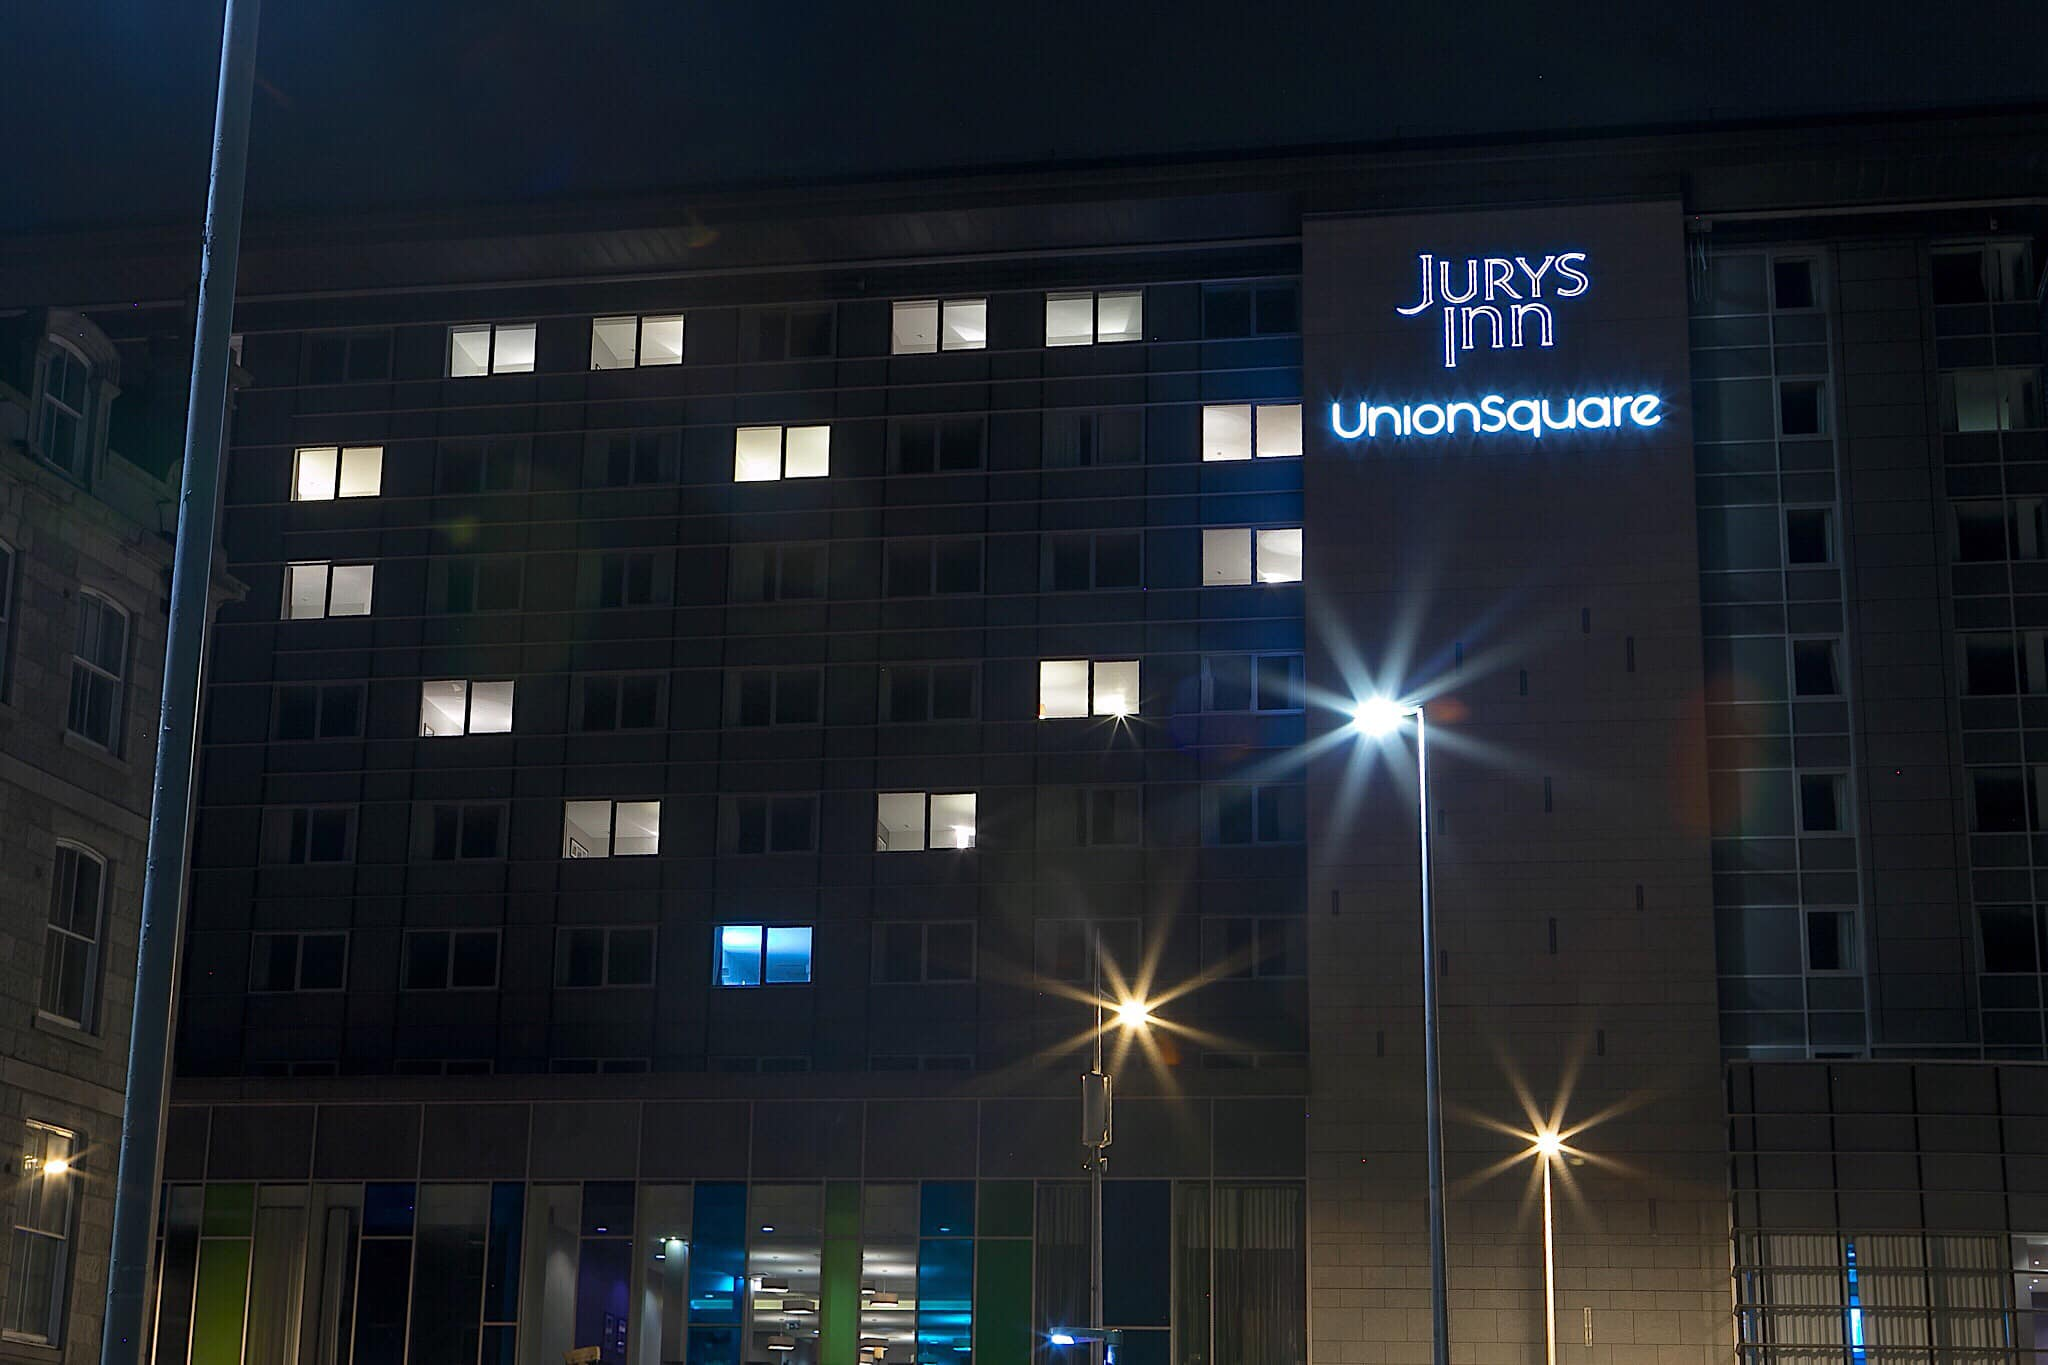 The Jurys Inn hotel at Union Square. Picture by Rebecca McGregor